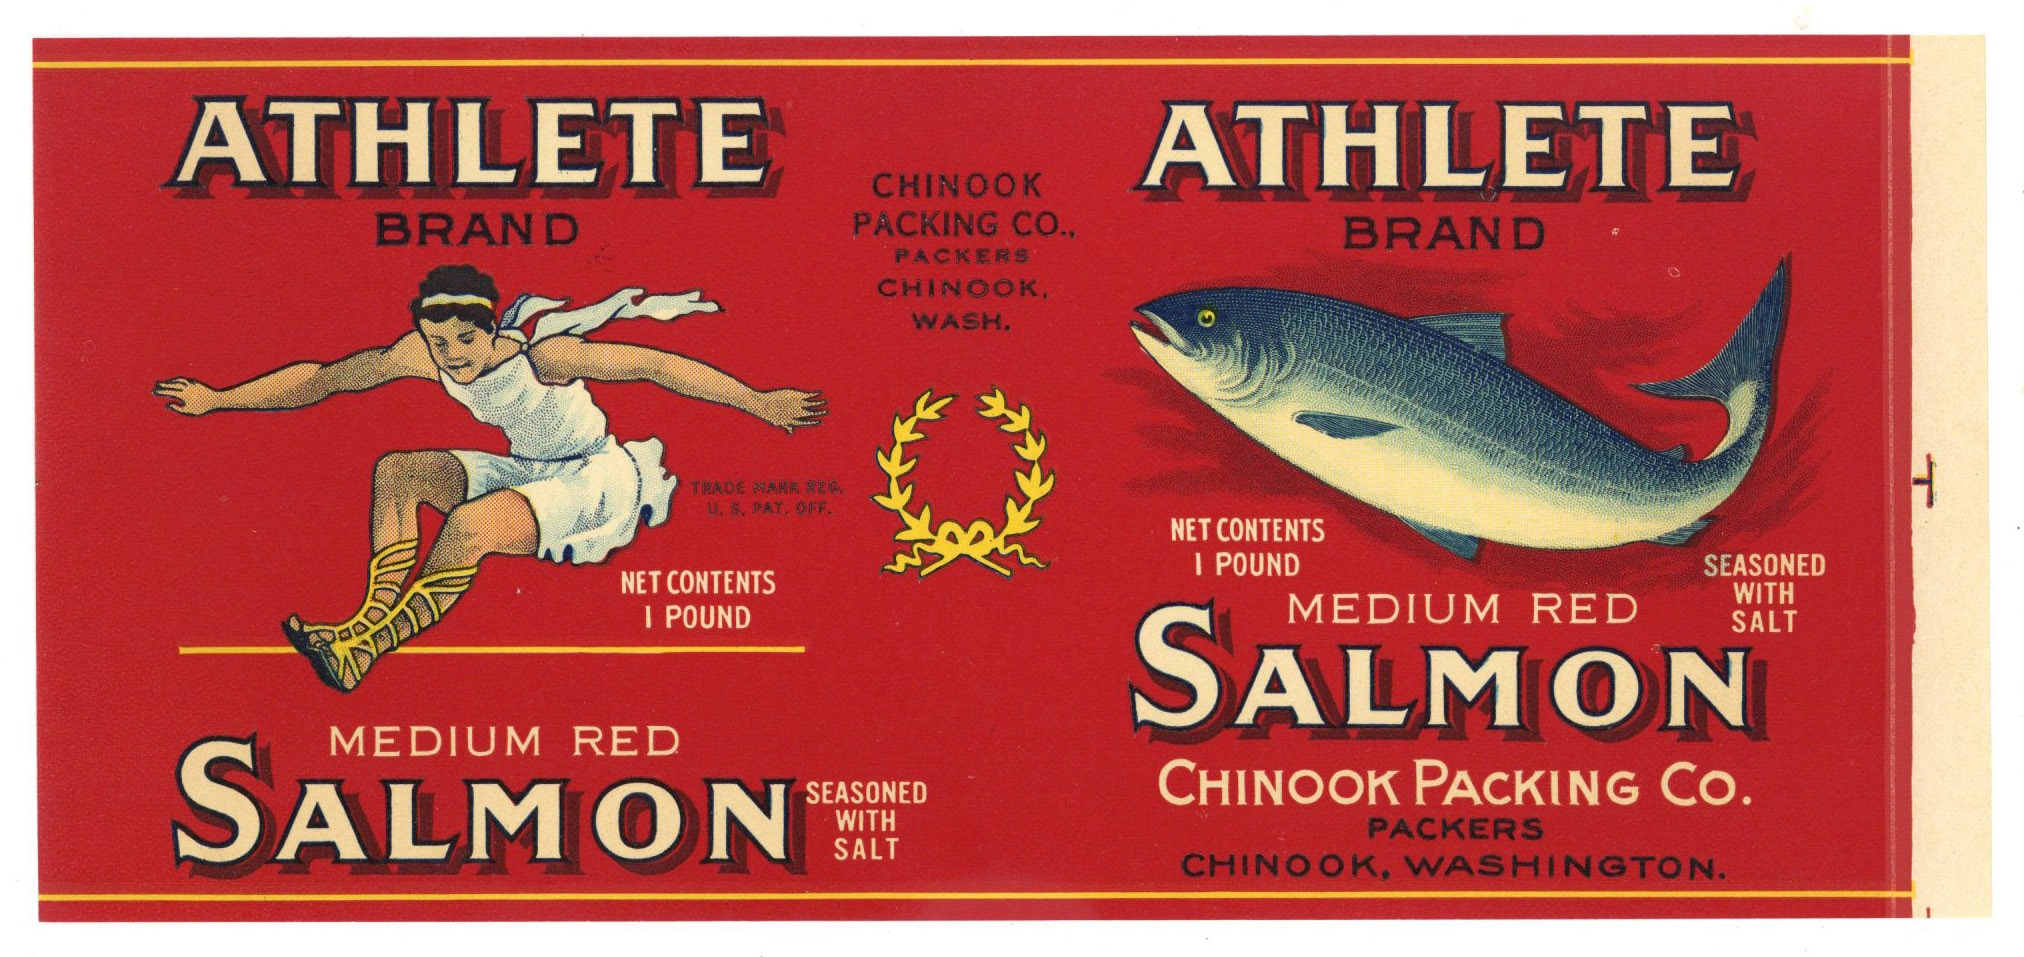 Athlete Brand Vintage Chinook Salmon Can Label